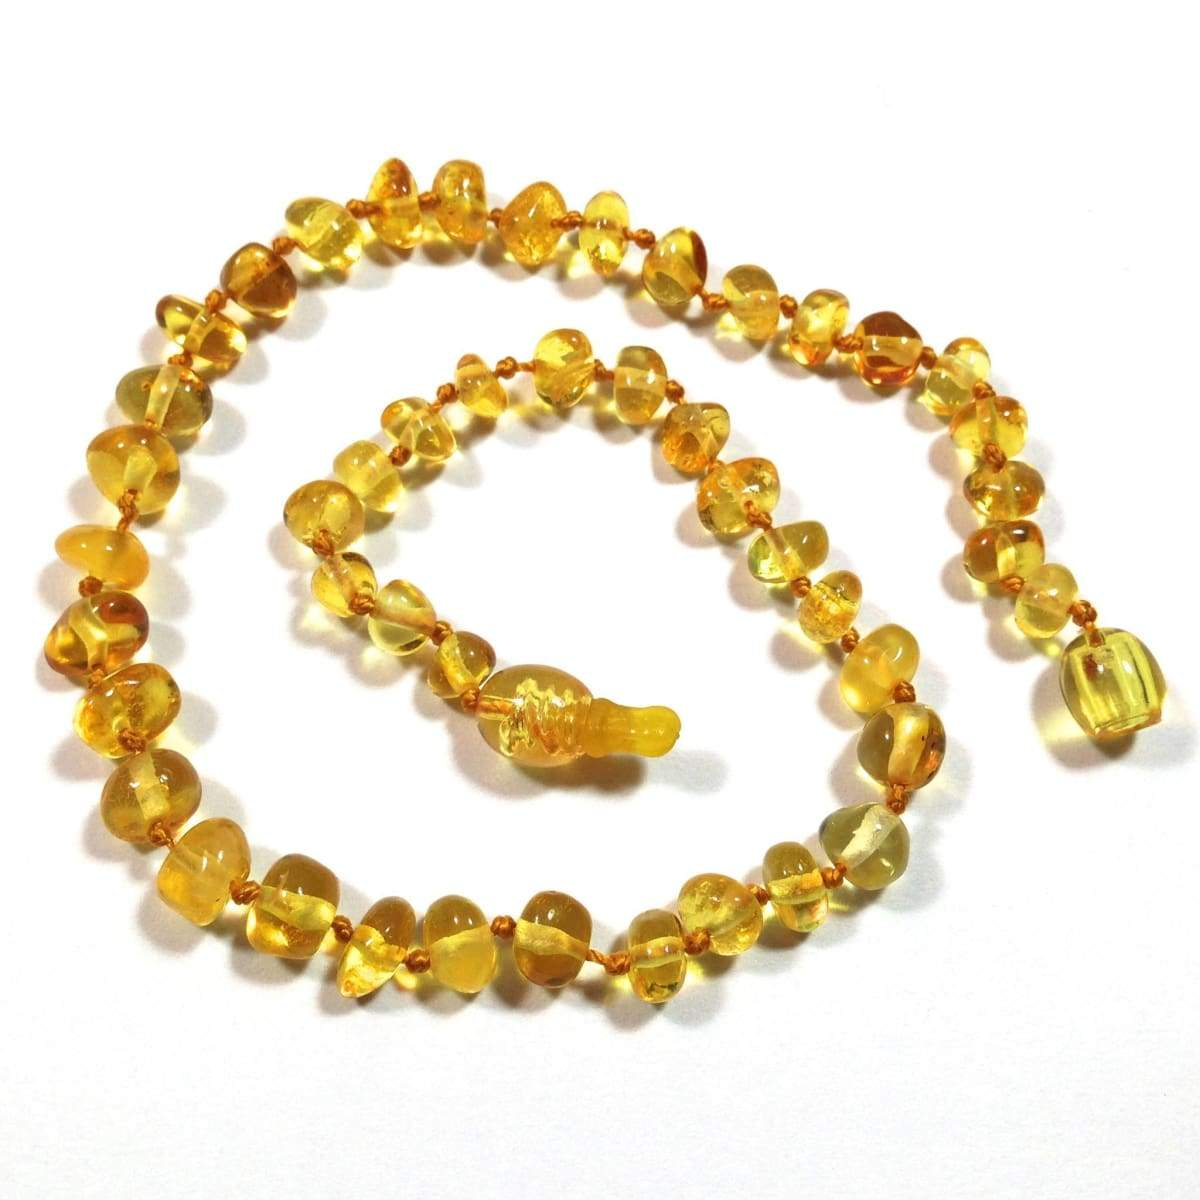 Baltic Amber Lemon - 12 Necklace - Pop Clasp - Baltic Amber Jewelry